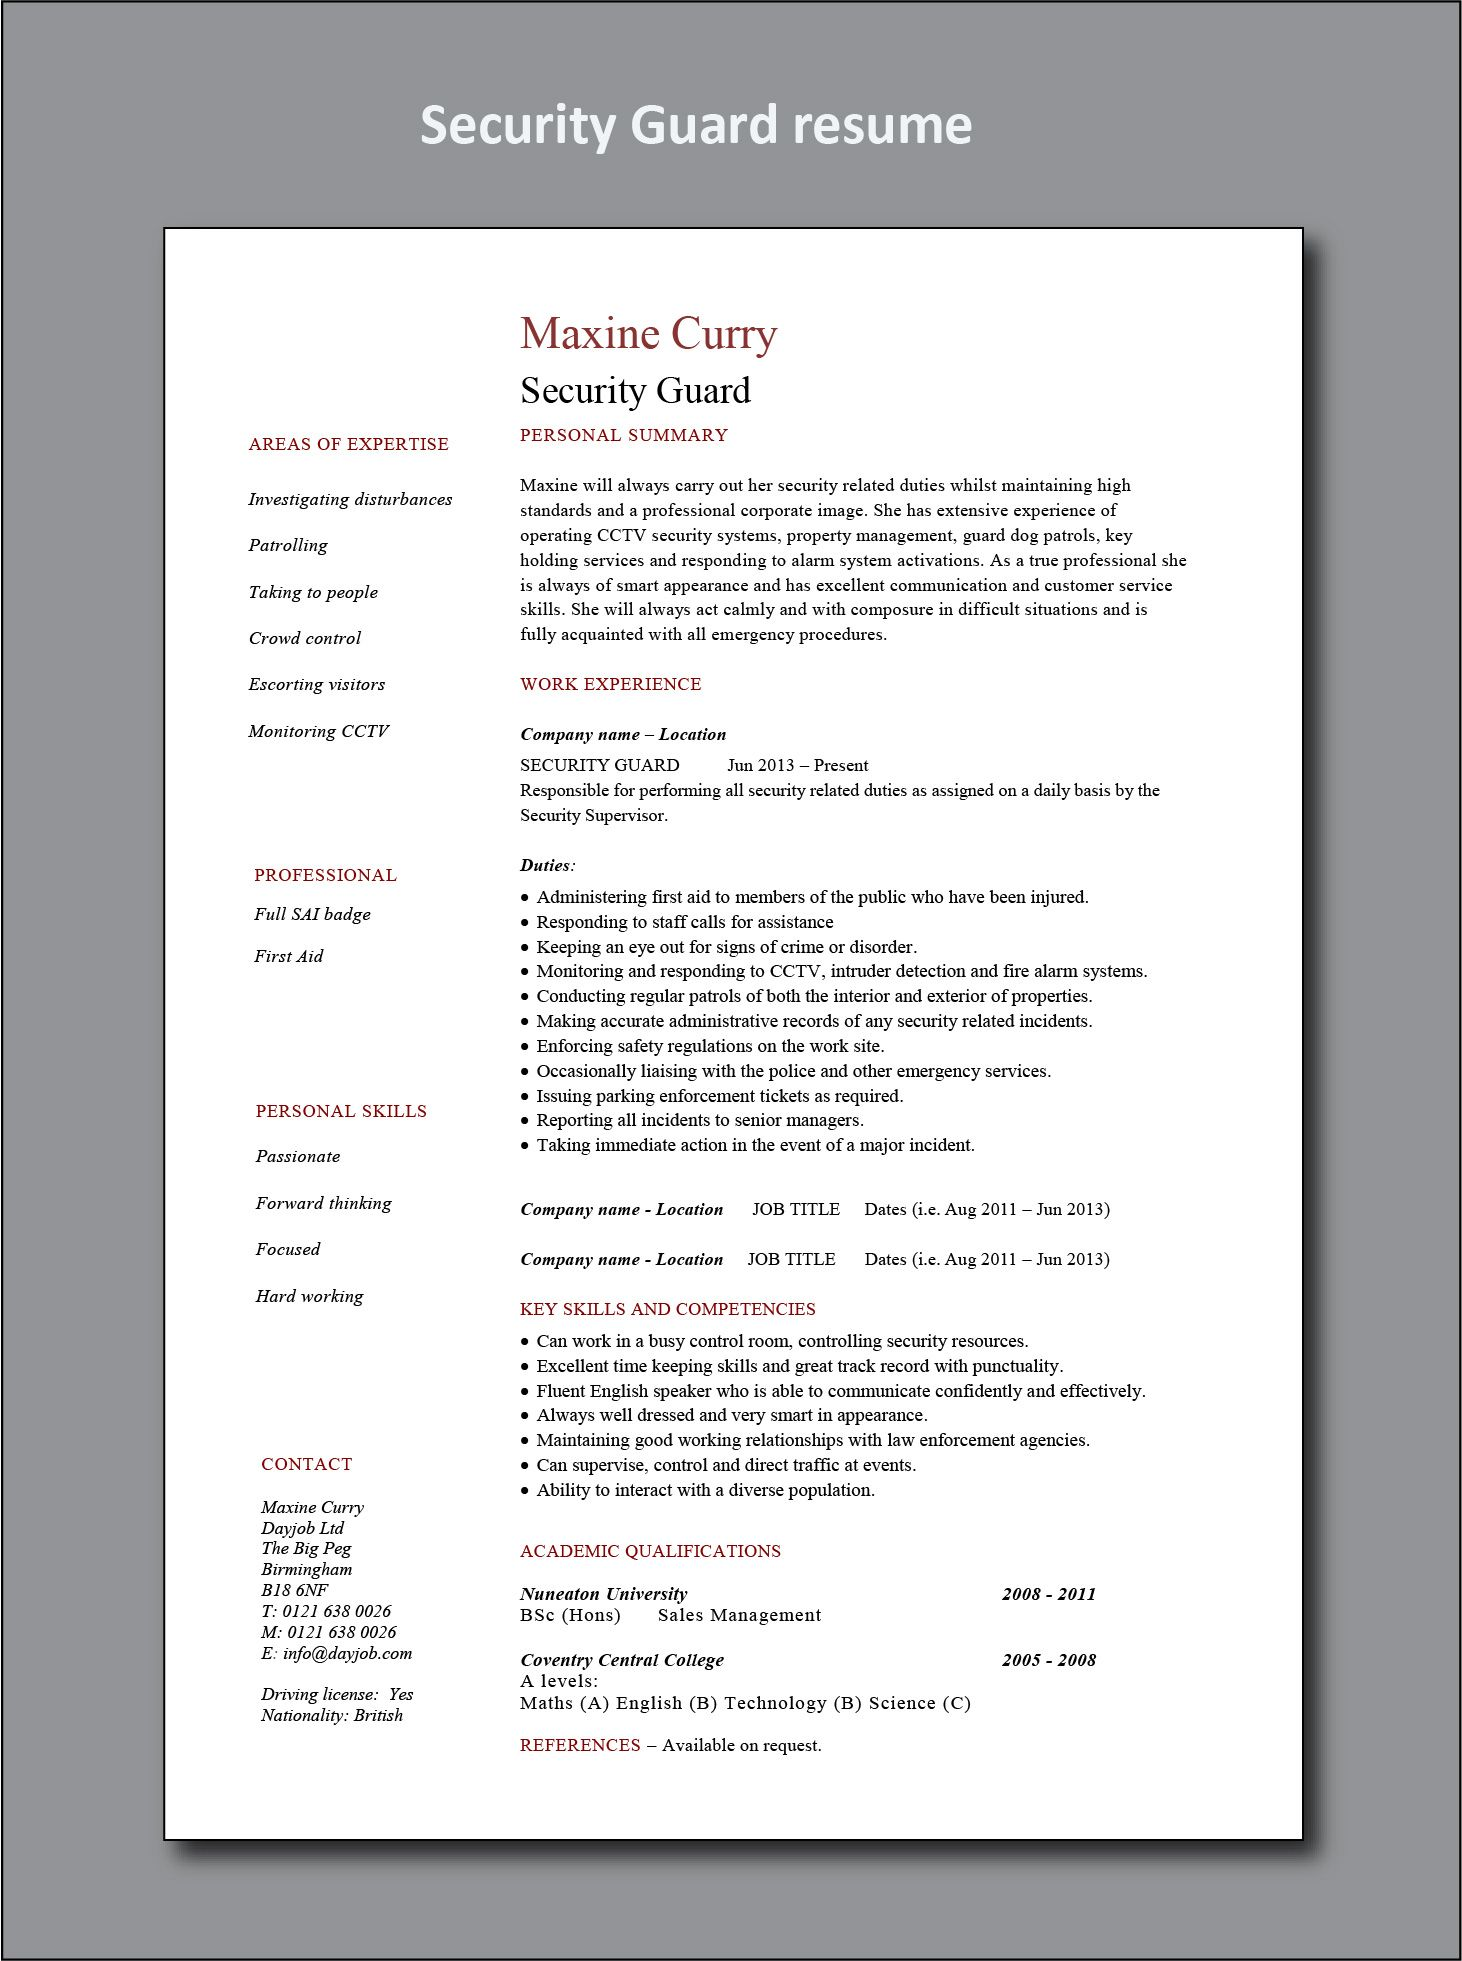 Security Guard Cv Sample Project Manager Resume Office Manager